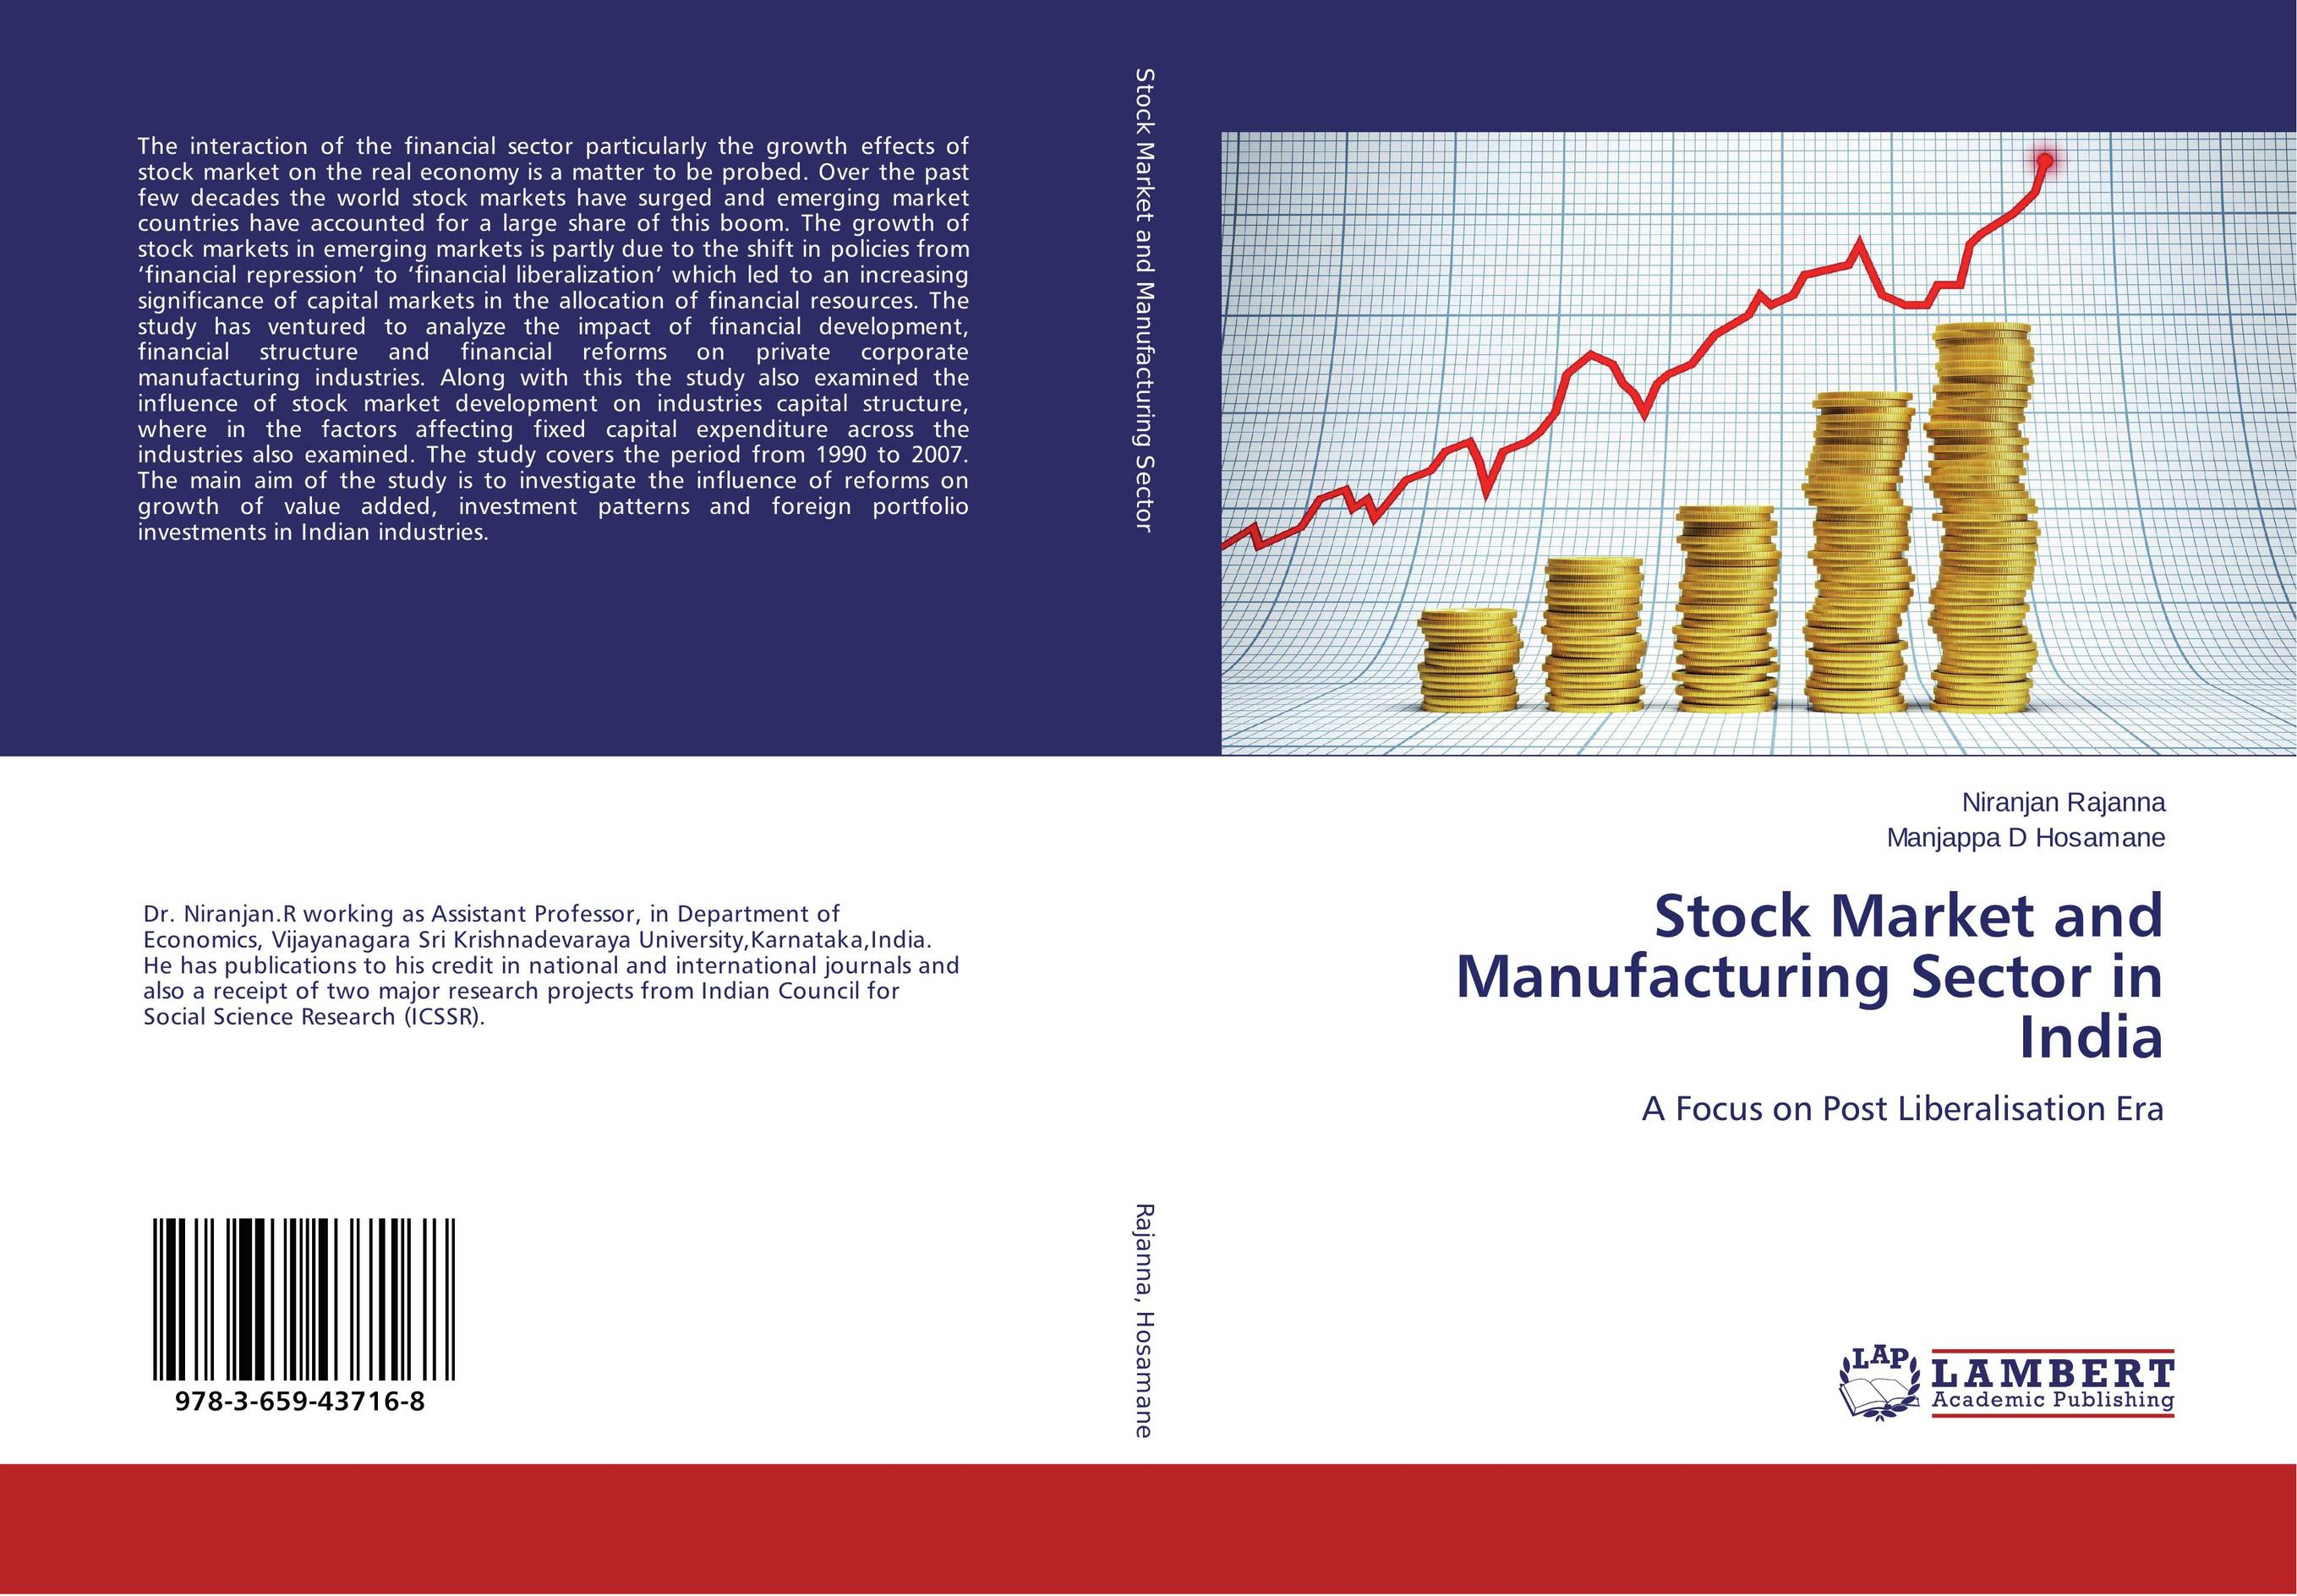 Stock Market and Manufacturing Sector in India